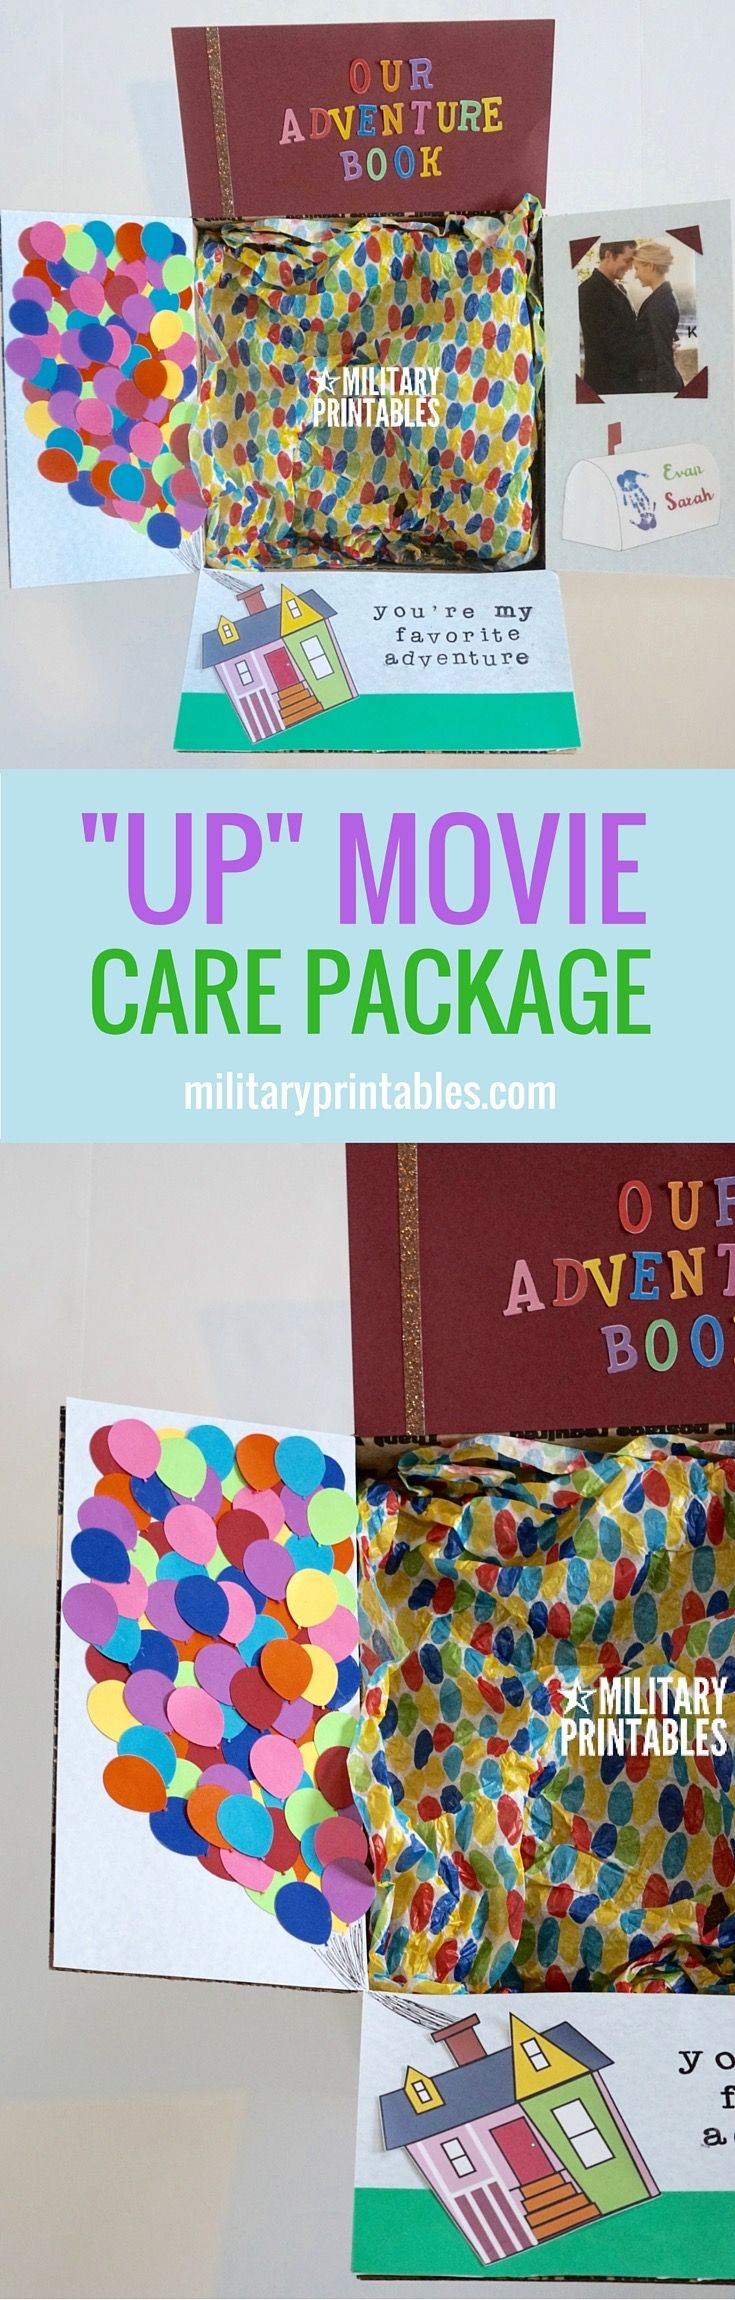 "Care Package Idea from the Disney Movie ""Up"", love the balloons!"